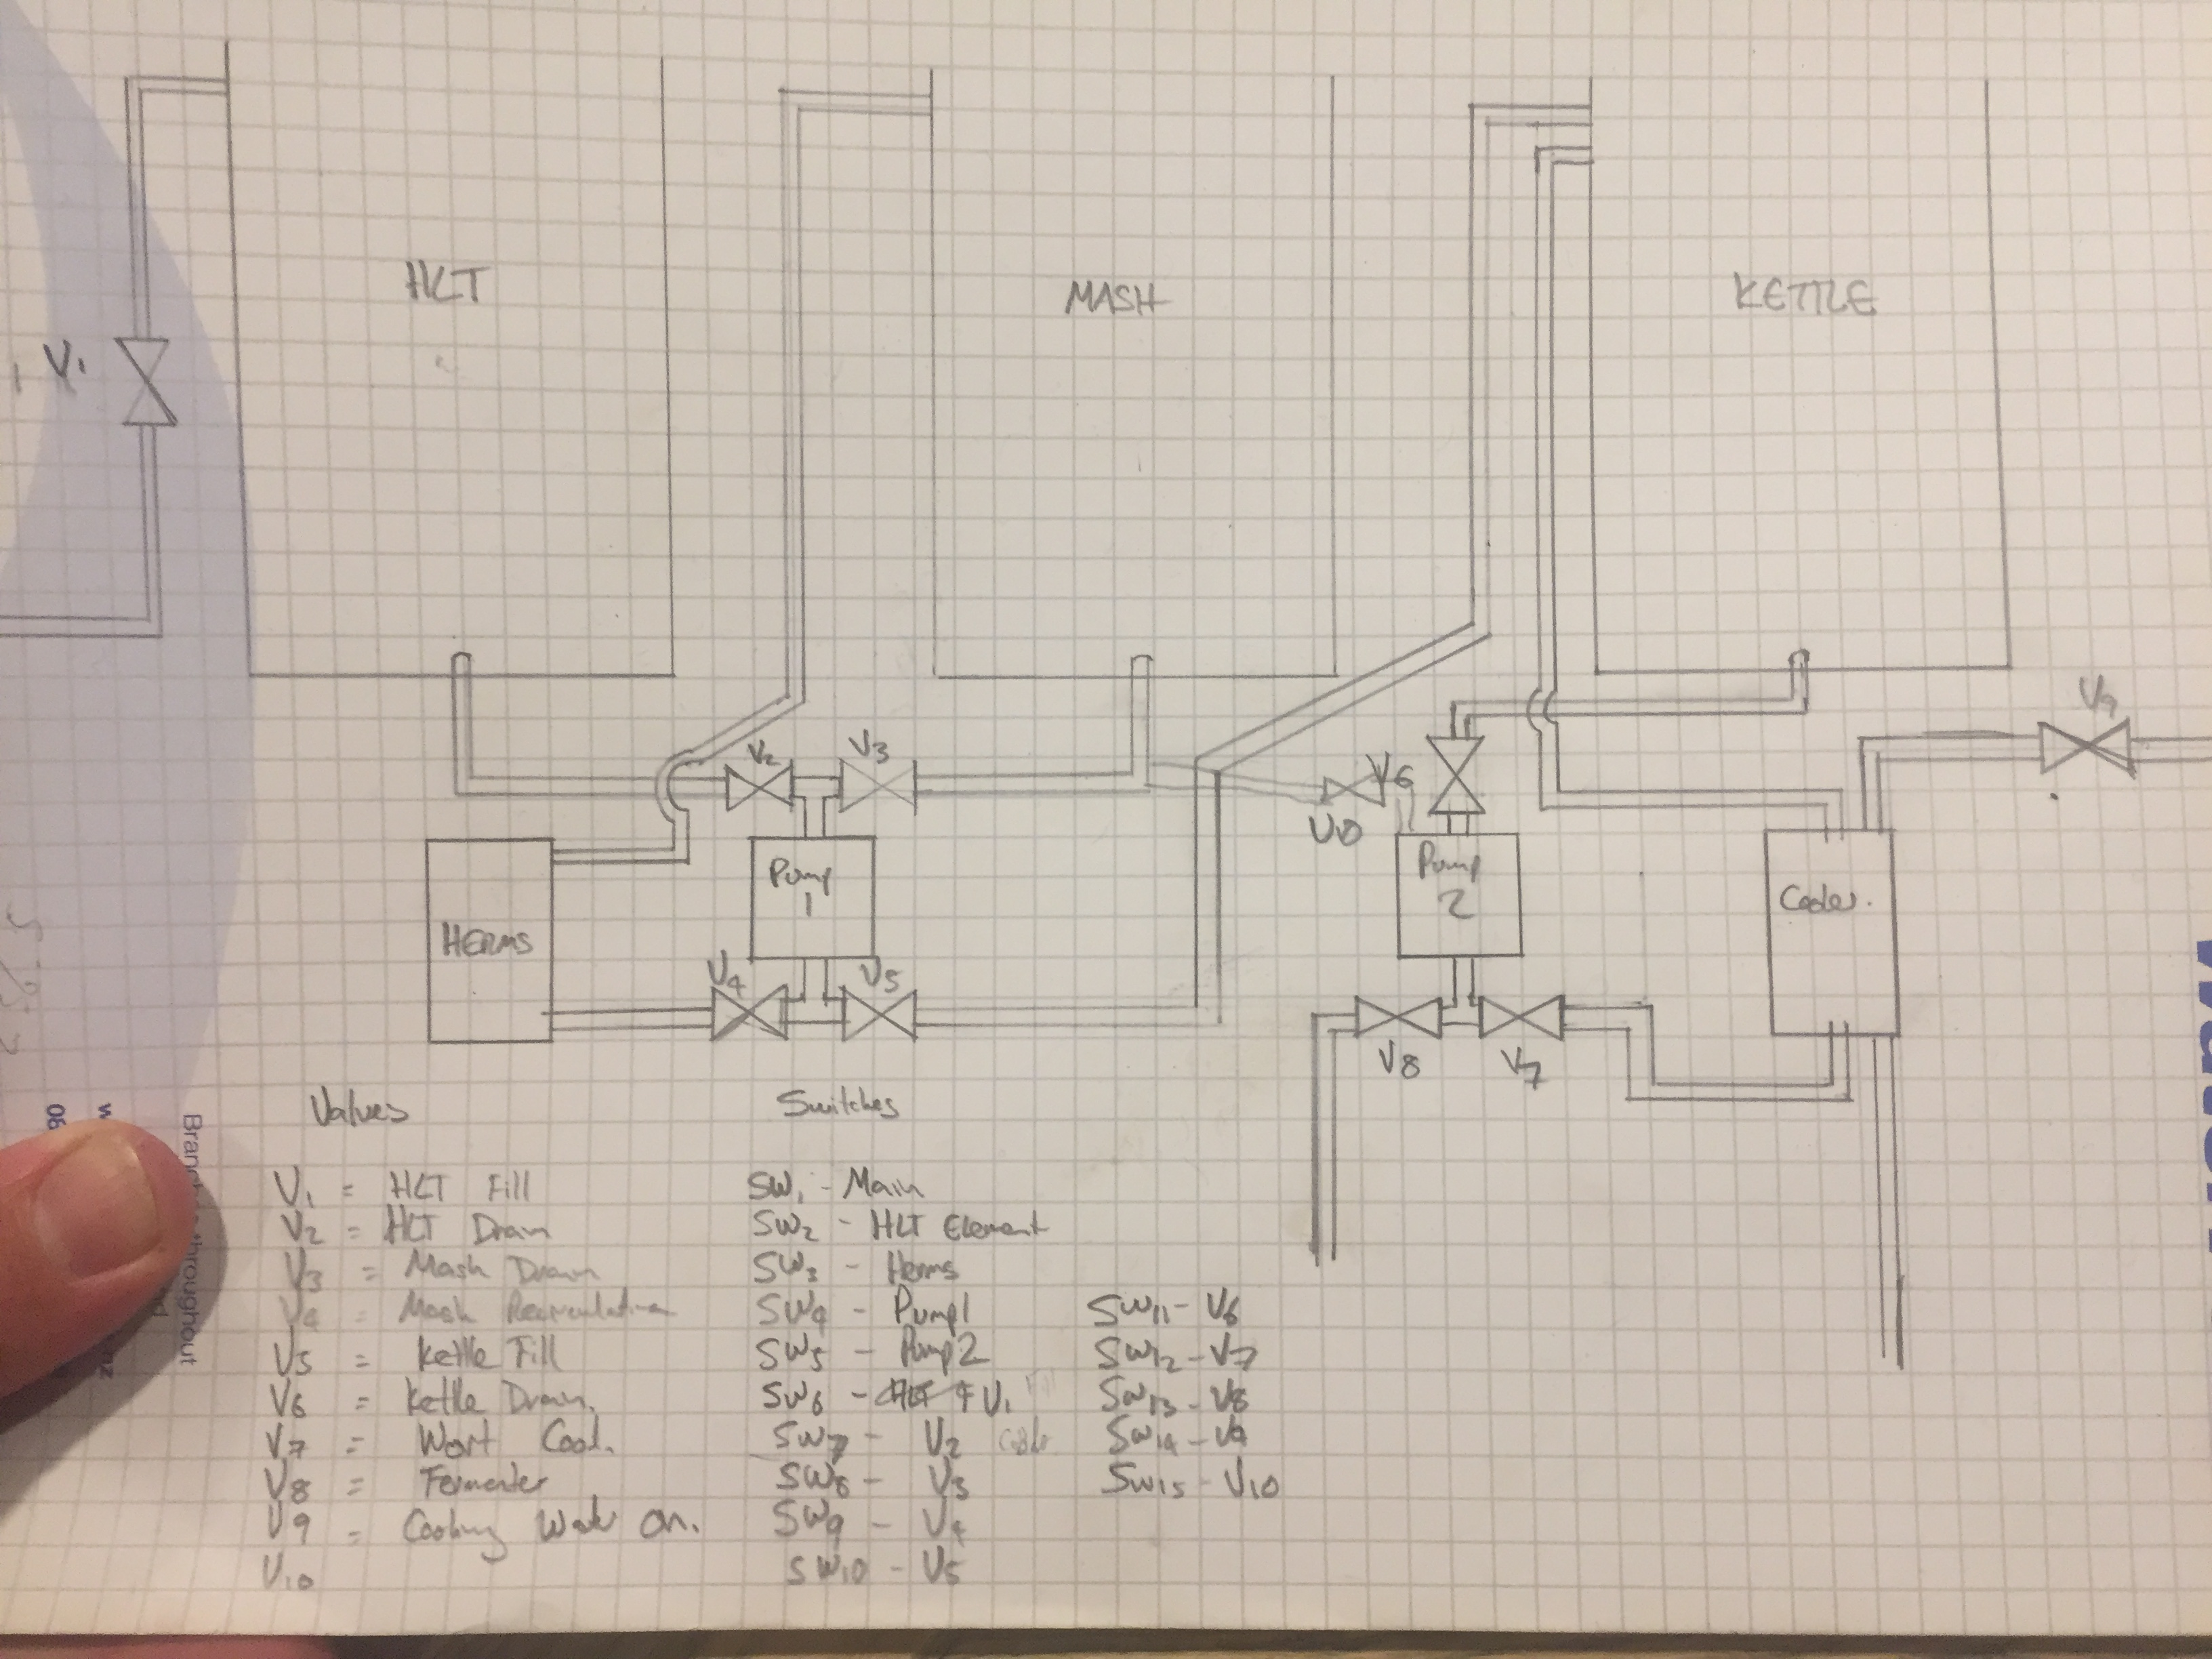 Wiring Diagram Rims Bcs Opinions About Bep Brewpi Controller For My Herms Setup General Community Rh Com Hvac Diagrams